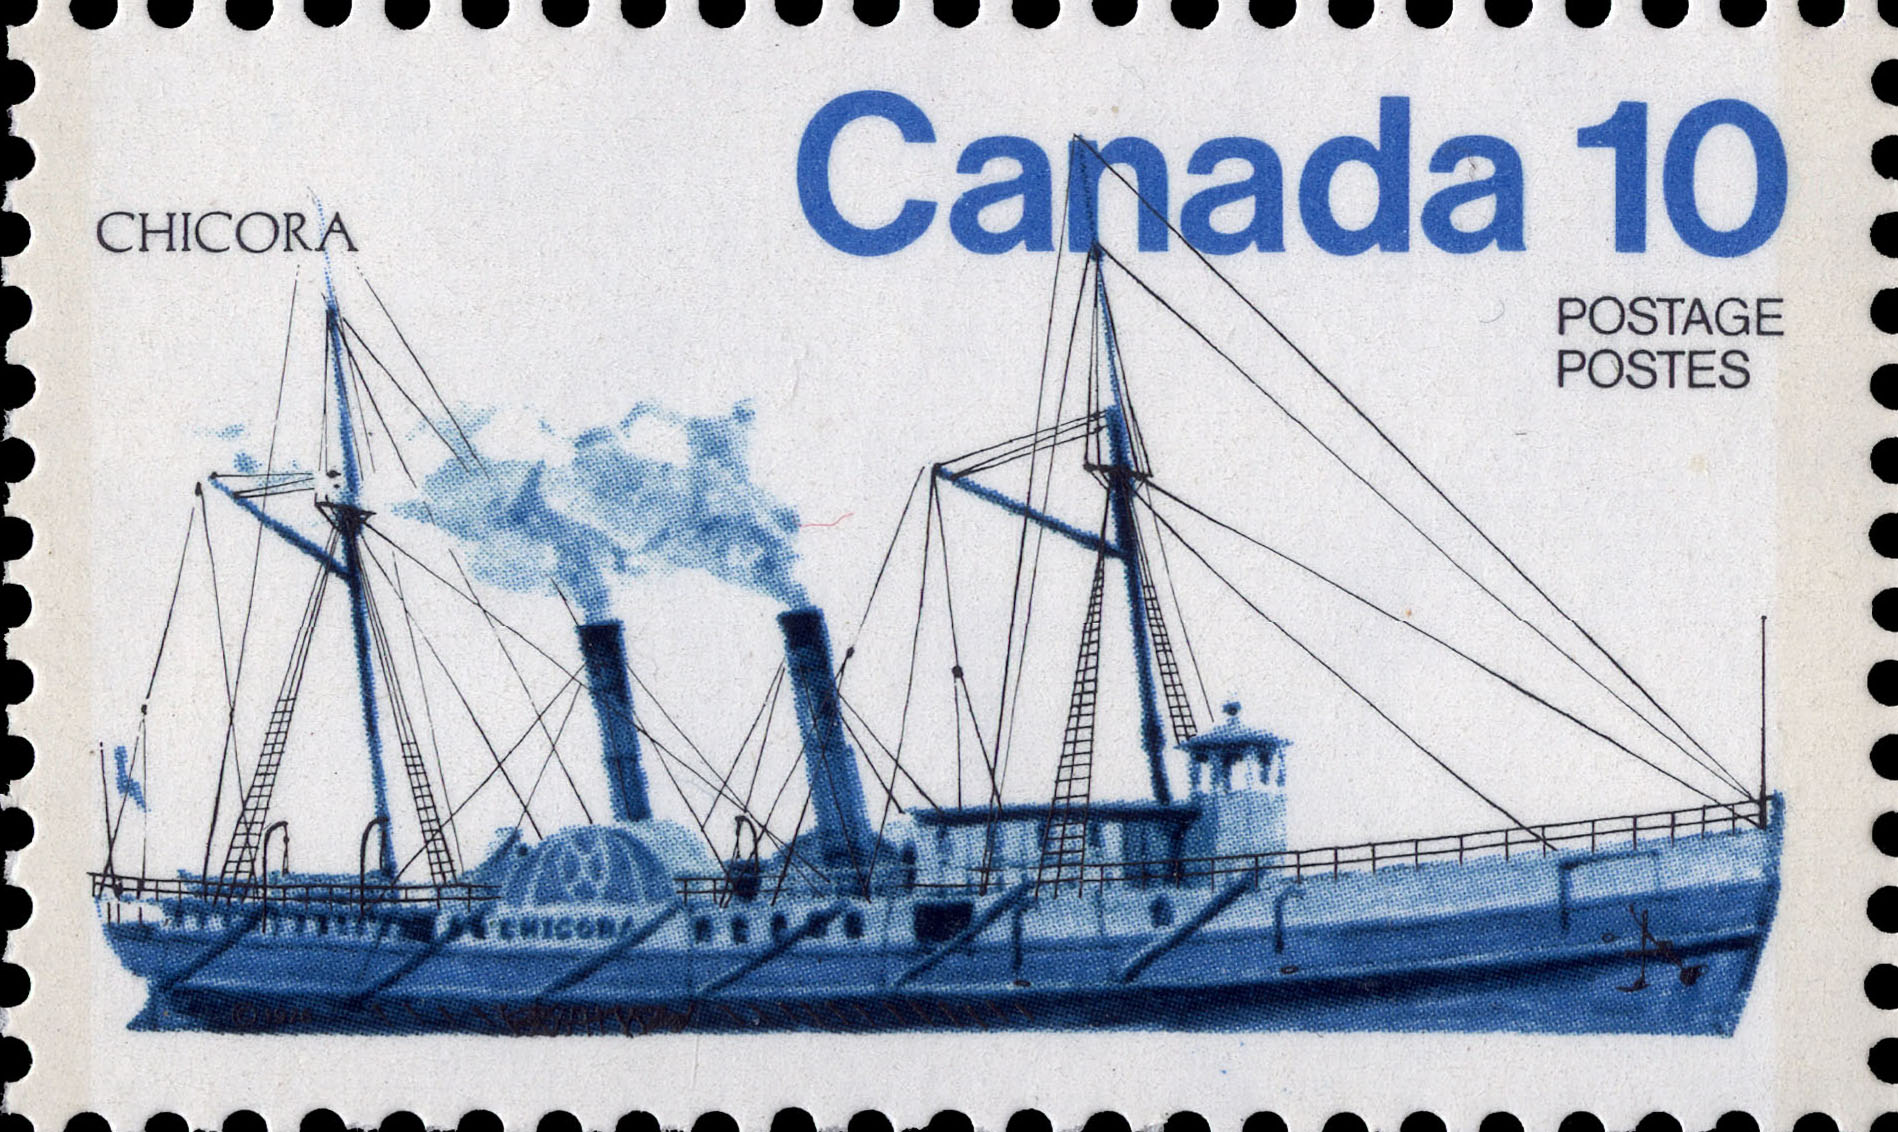 Chicora Canada Postage Stamp | Ships of Canada, Inland Vessels